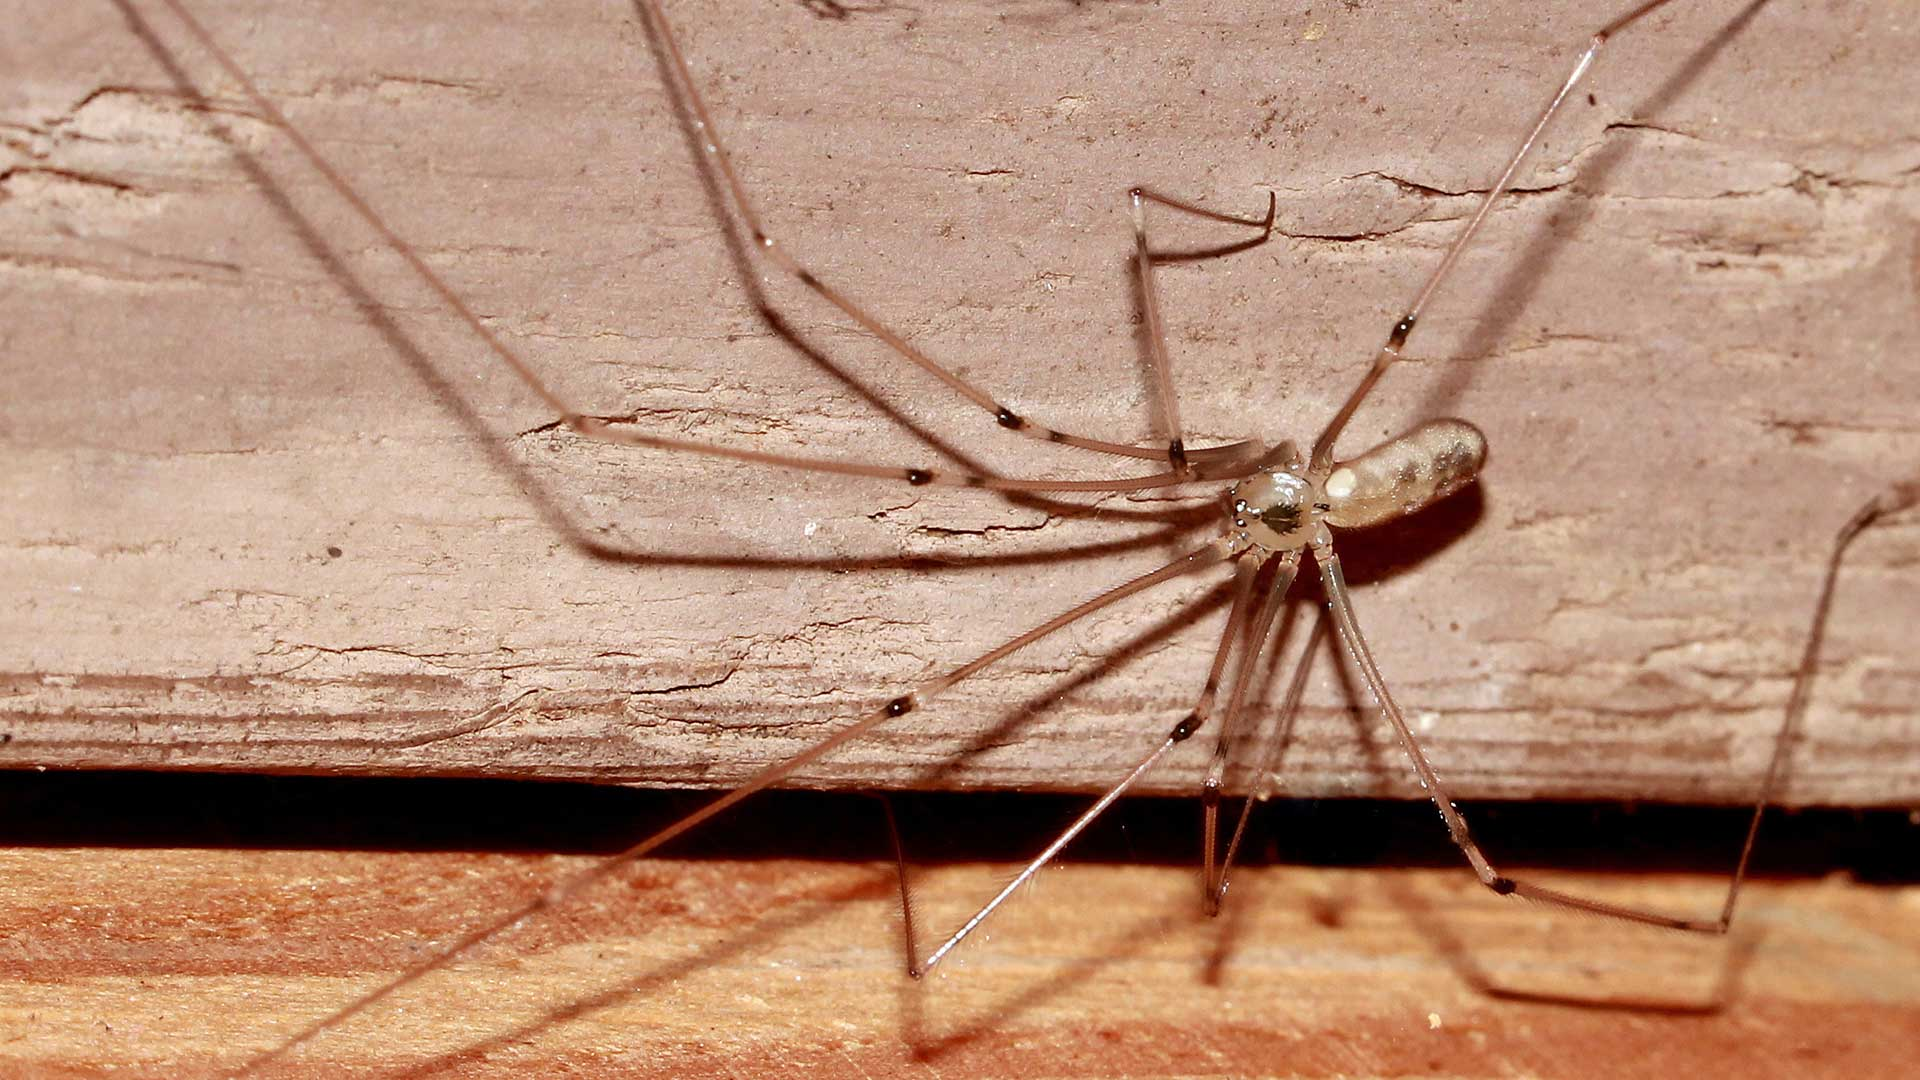 Liberty Termite & Pest Control - Spiders